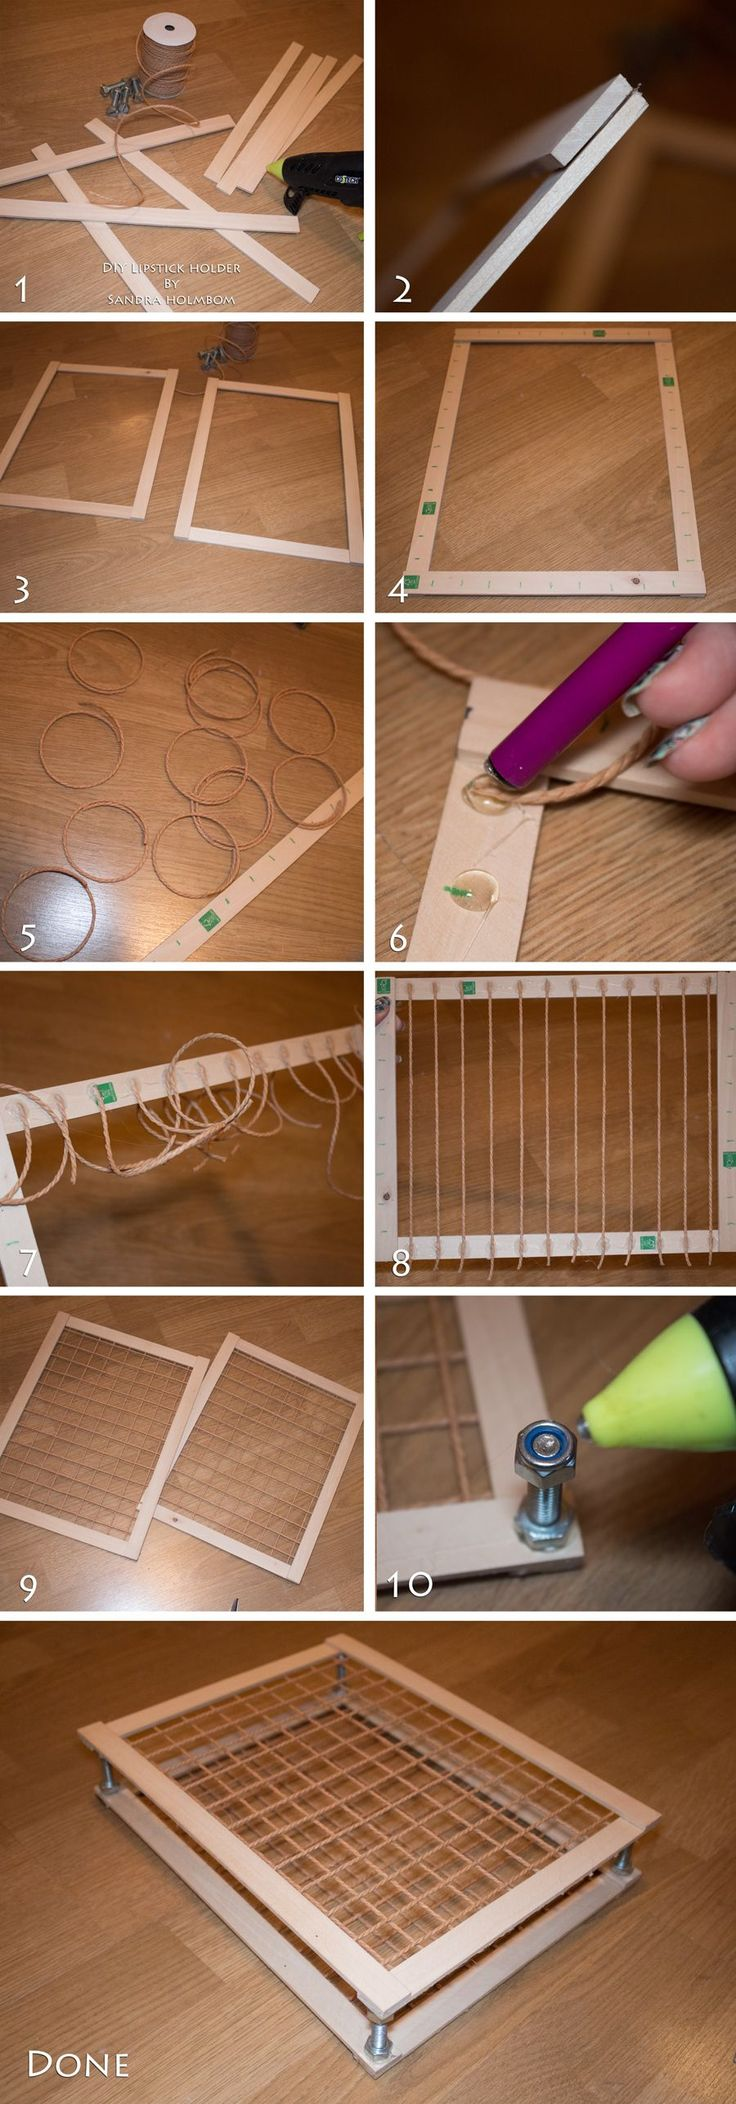 193 best images about Organizing - Makeup & Vanity Table on Pinterest